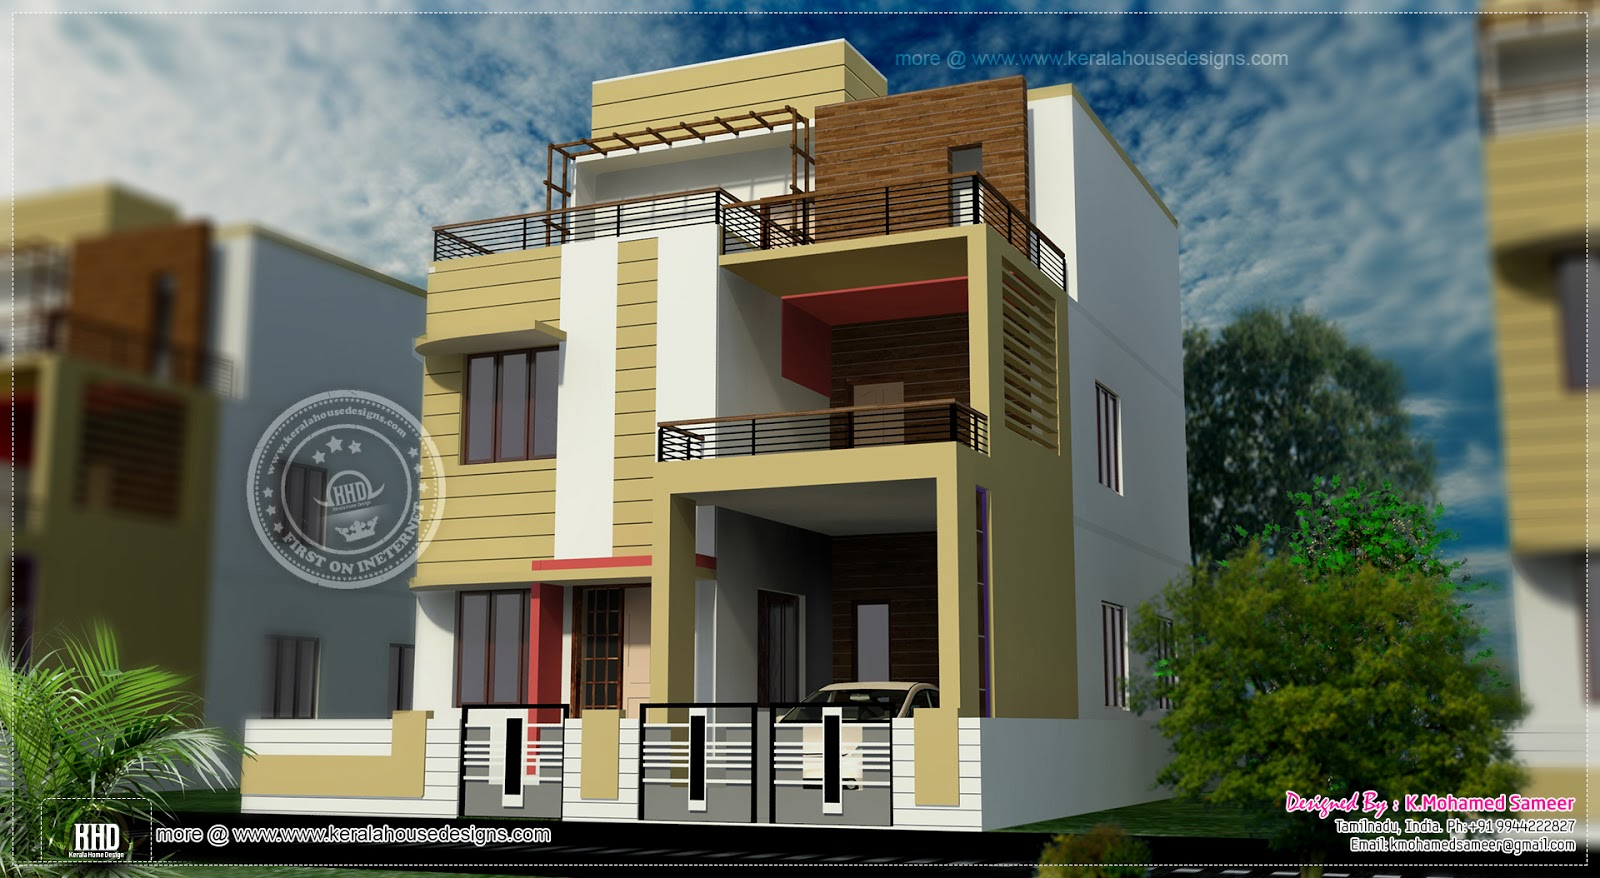 3 Floor House Design Of 3 Story House Plan Design In 2626 Home Kerala Plans